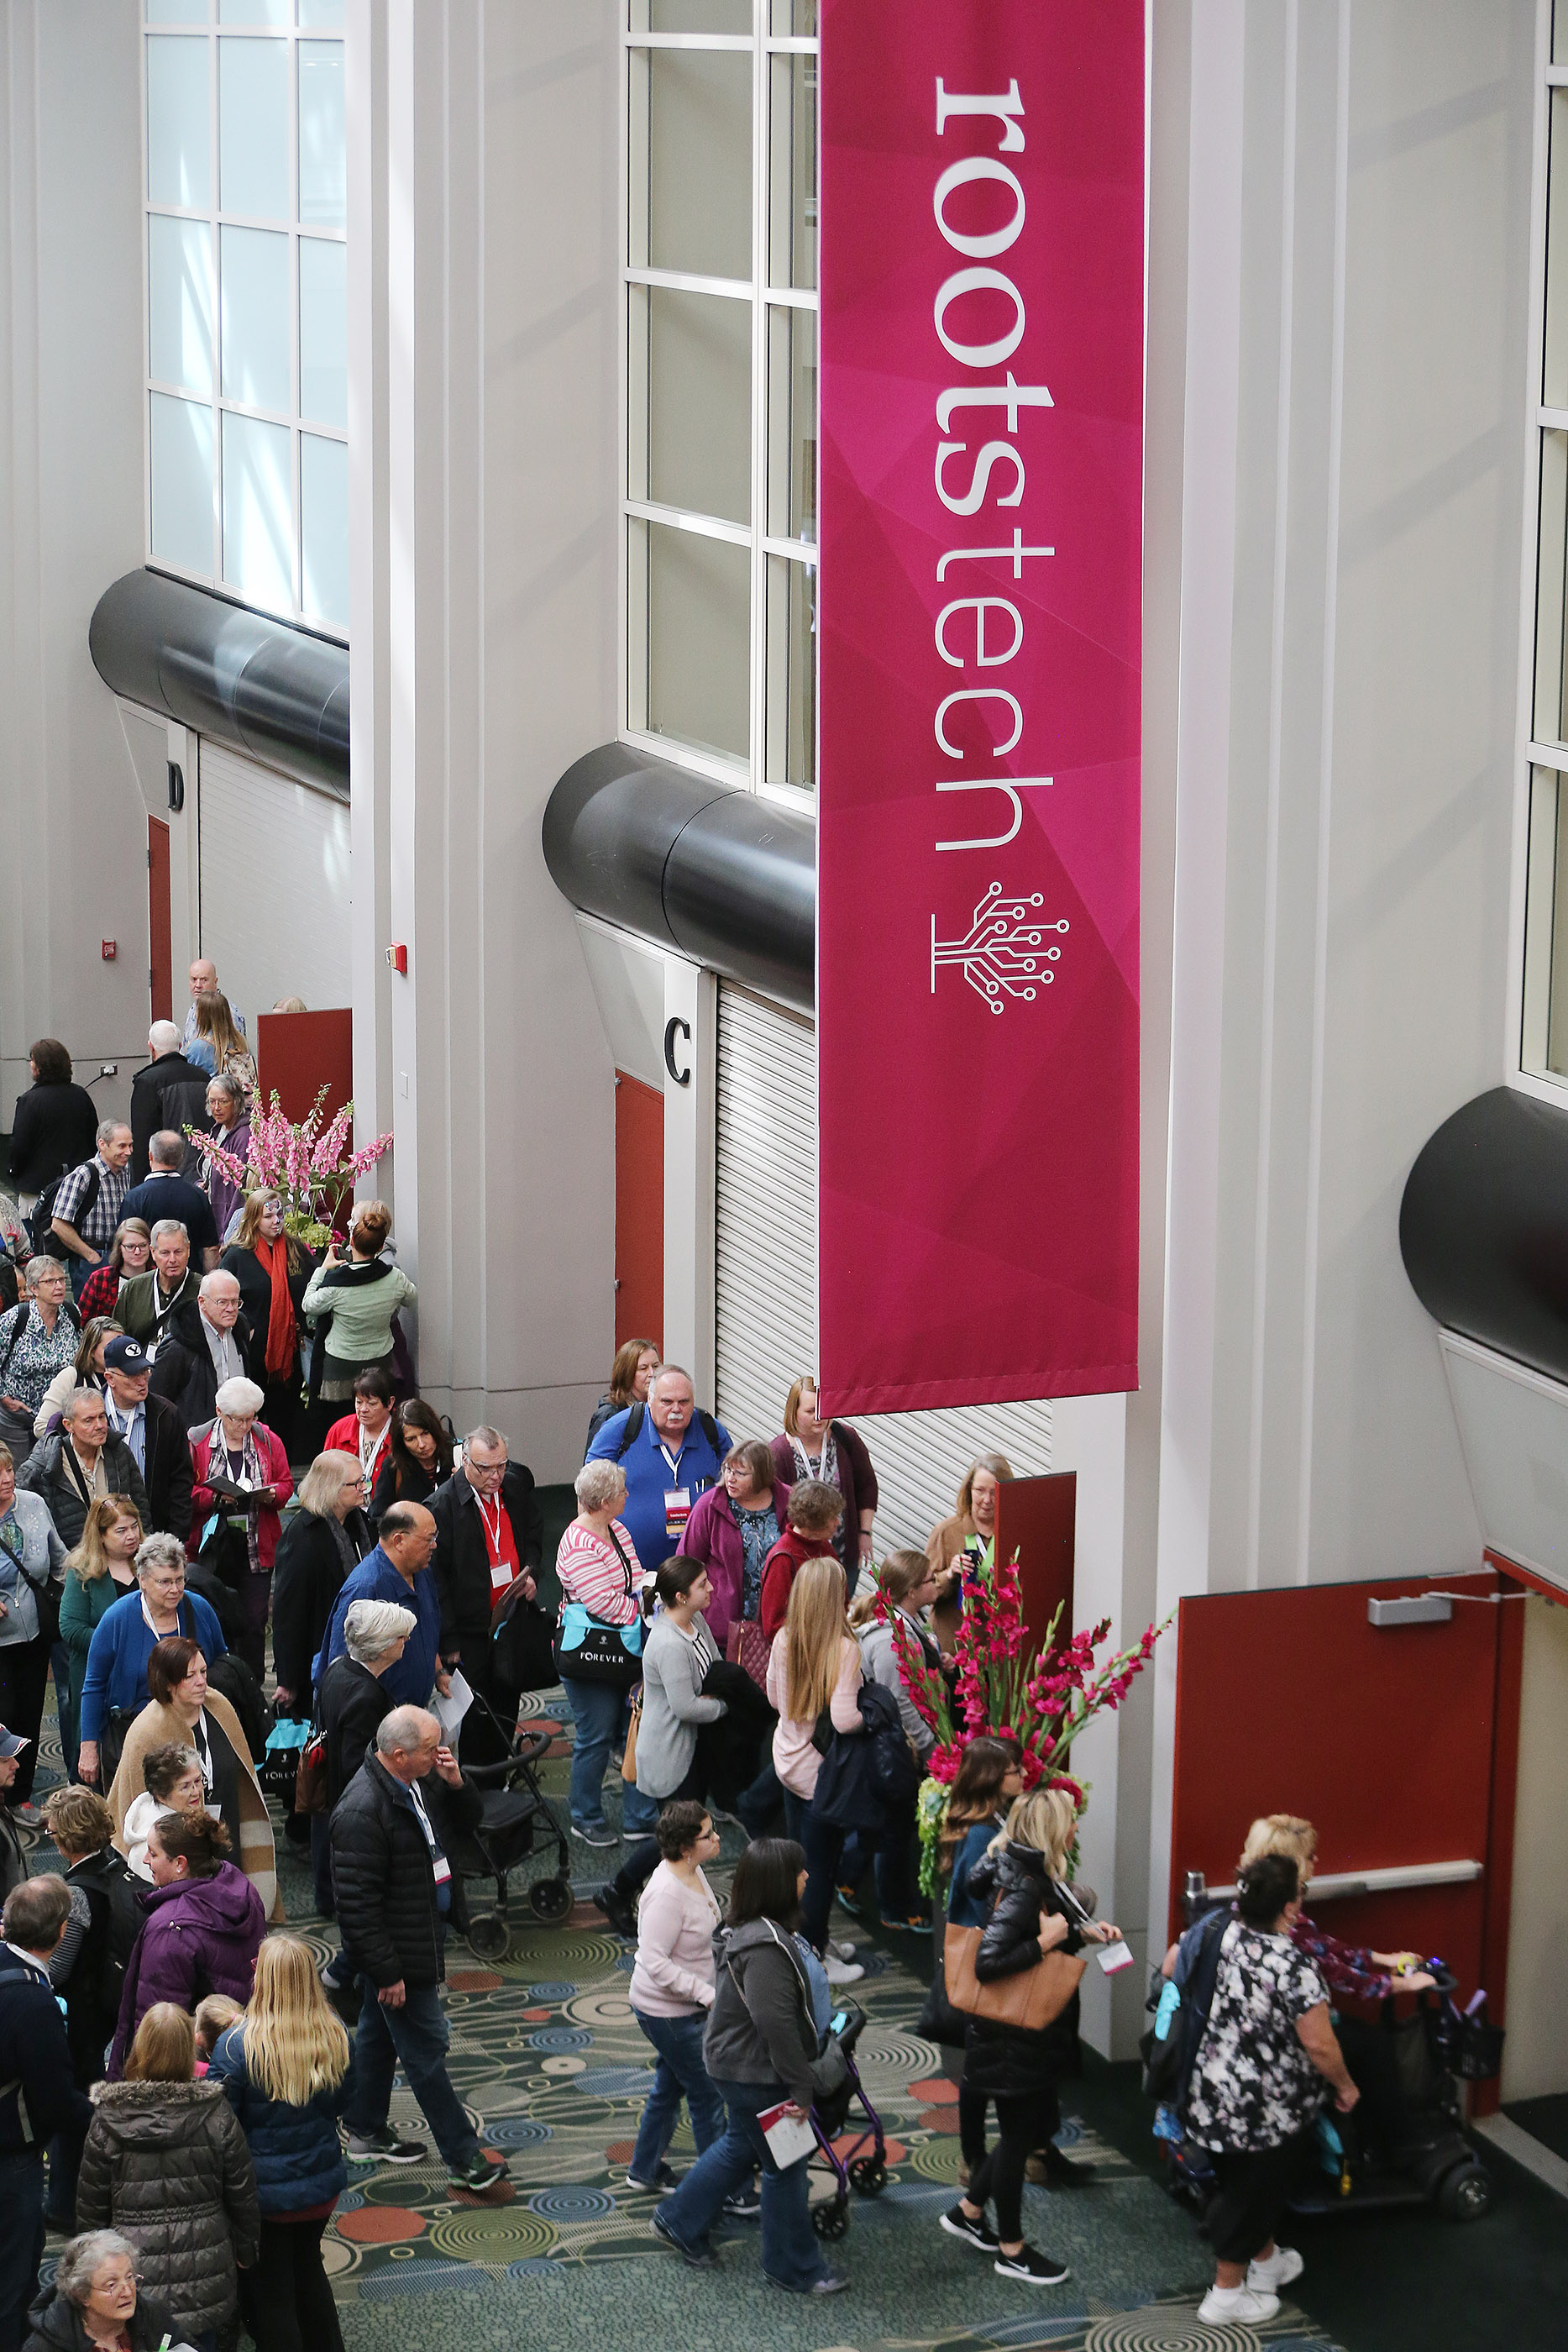 Attendees walk through RootsTech in Salt Lake City on Saturday, March 3, 2018. This year's RootsTech is scheduled for Feb. 27-March 2 at the Salt Palace Convention Center.